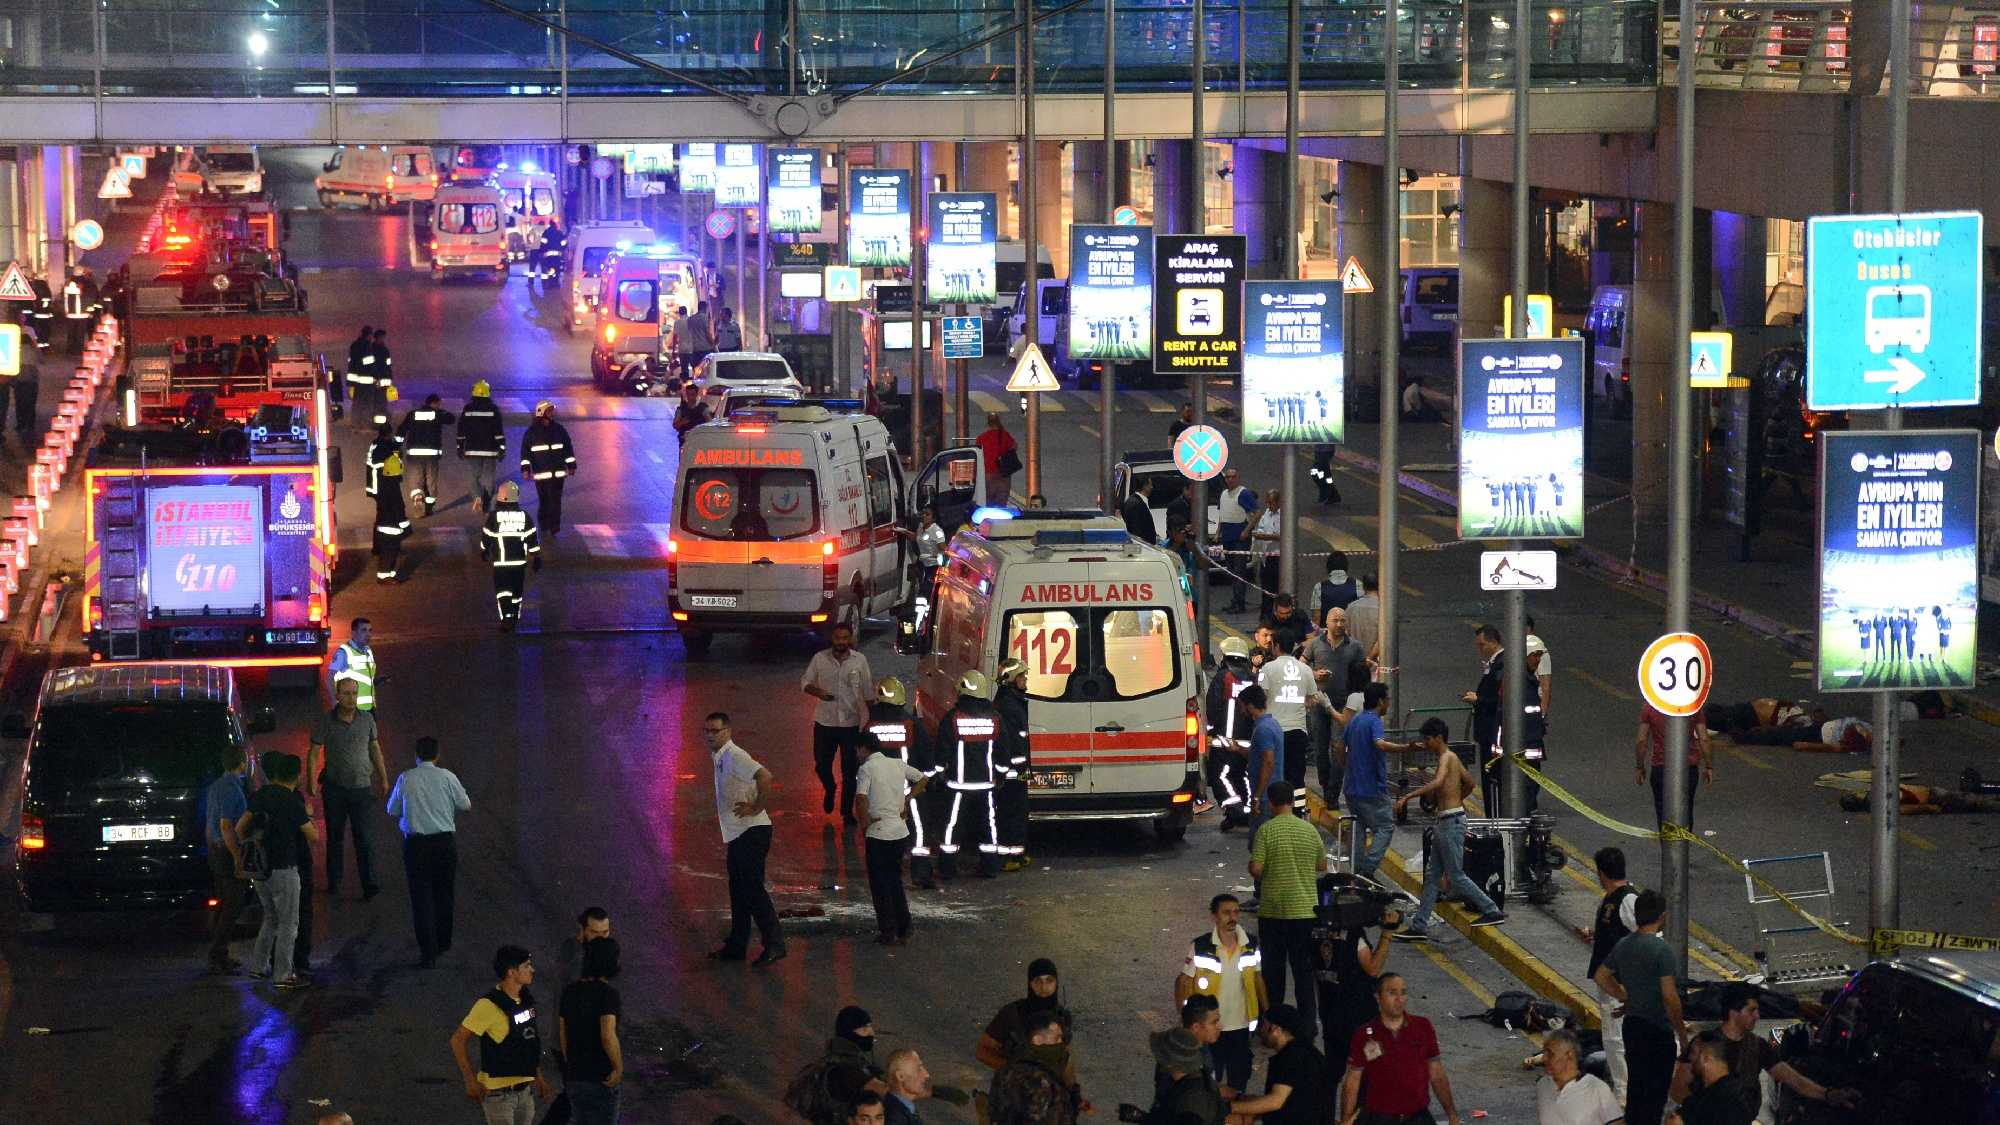 Turkish rescue services gather outside Istanbul's Ataturk airport, Tuesday, June 28, 2016. Two explosions have rocked Istanbul's Ataturk airport, killing several people and wounding others, Turkey's justice minister and another official said Tuesday. A Turkish official says two attackers have blown themselves up at the airport after police fired at them. The official said the attackers detonated the explosives at the entrance of the international terminal before entering the x-ray security check.